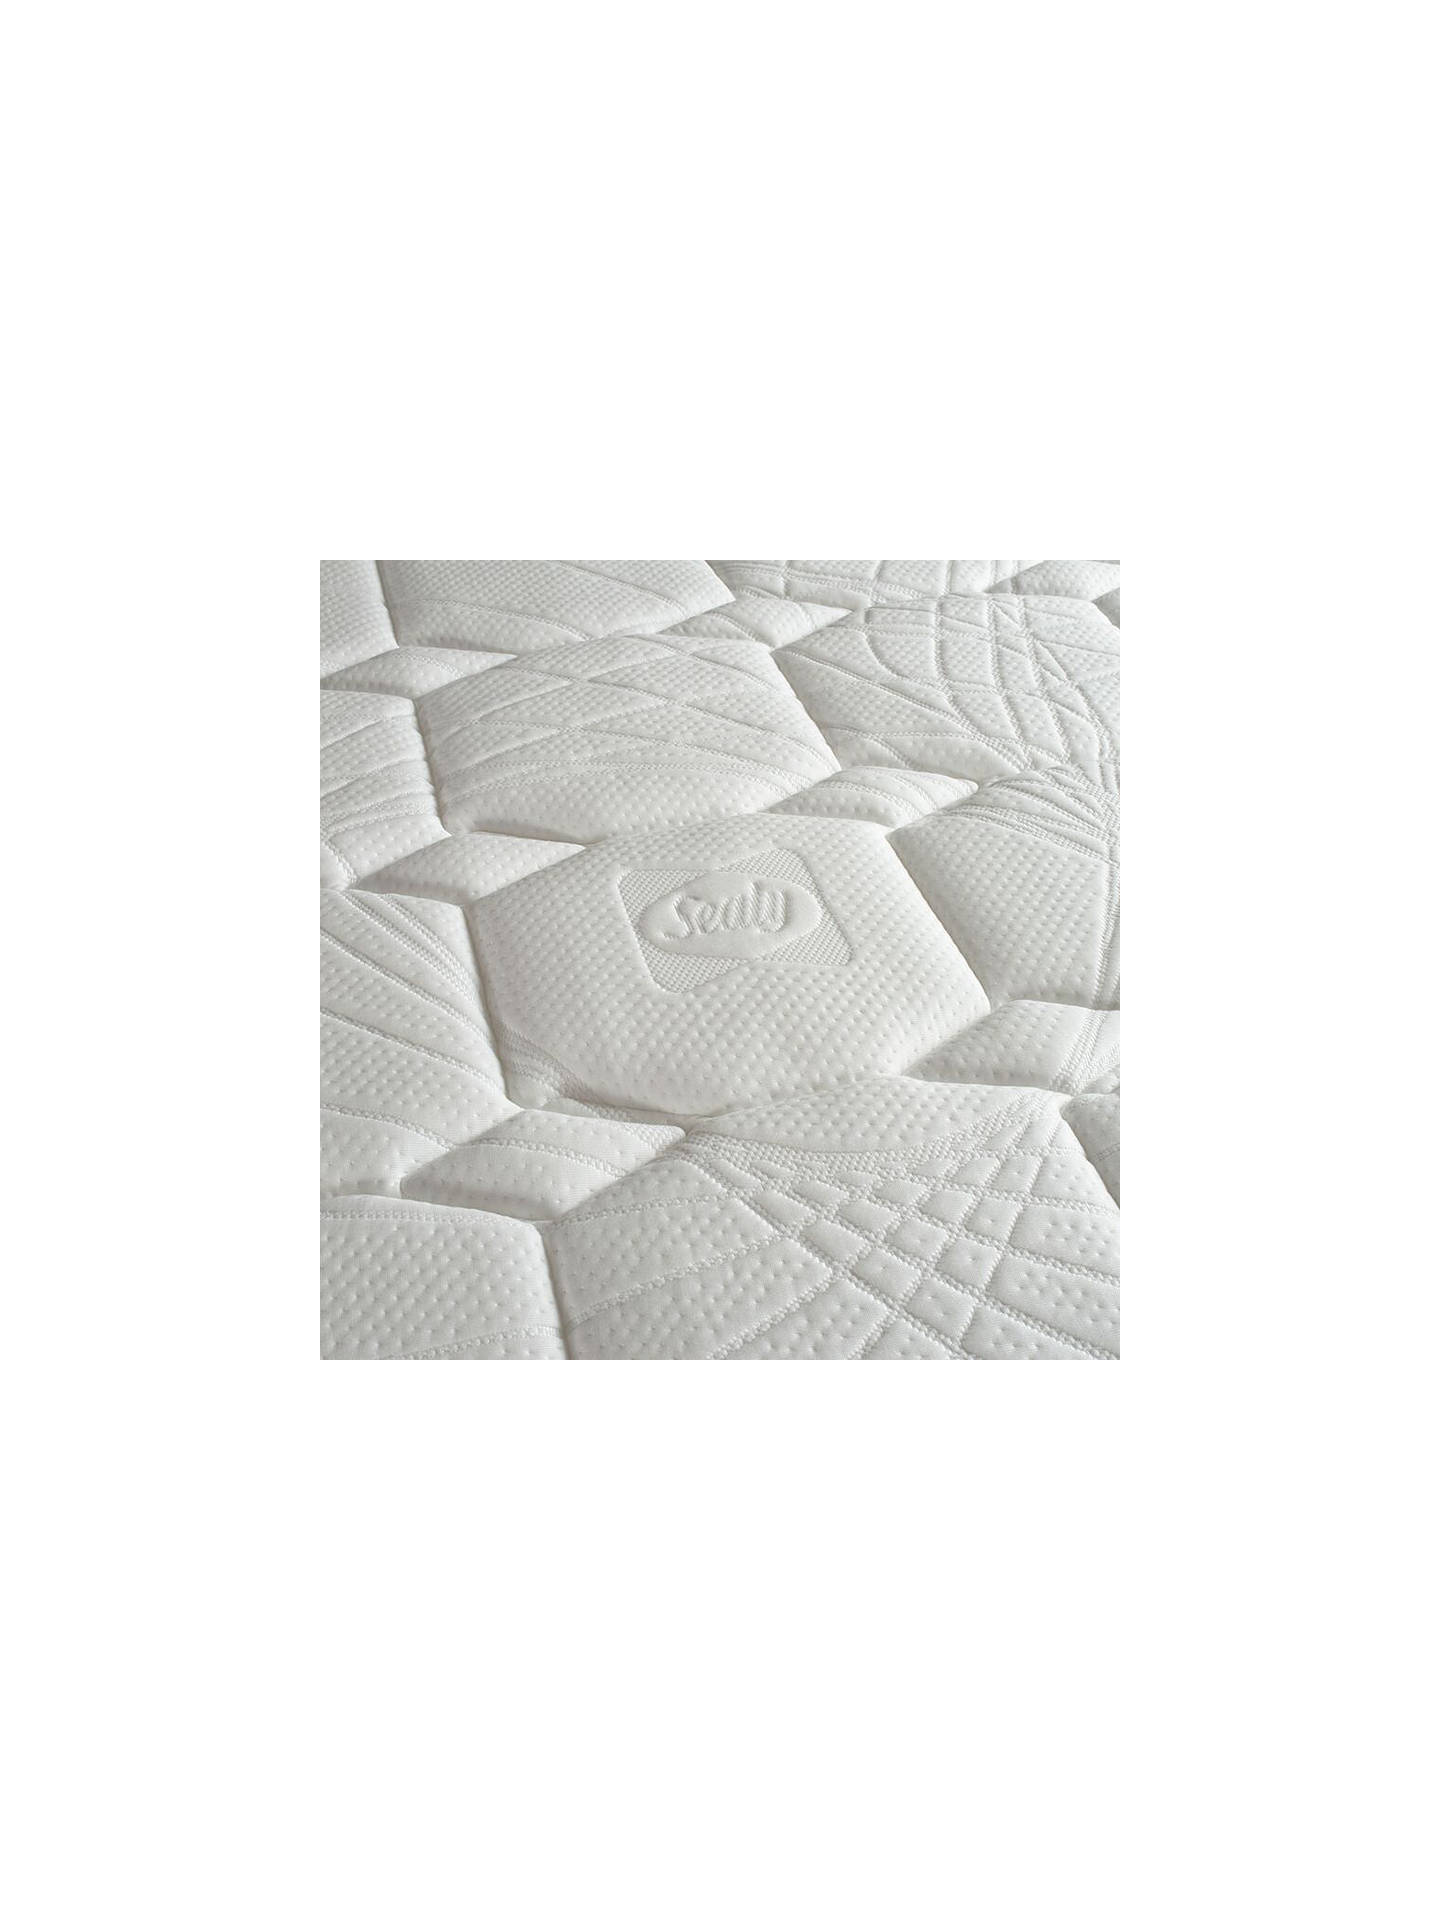 Buy Sealy Activsleep Geltex 2200 Pocket Spring Mattress, Medium, Super King Size Online at johnlewis.com